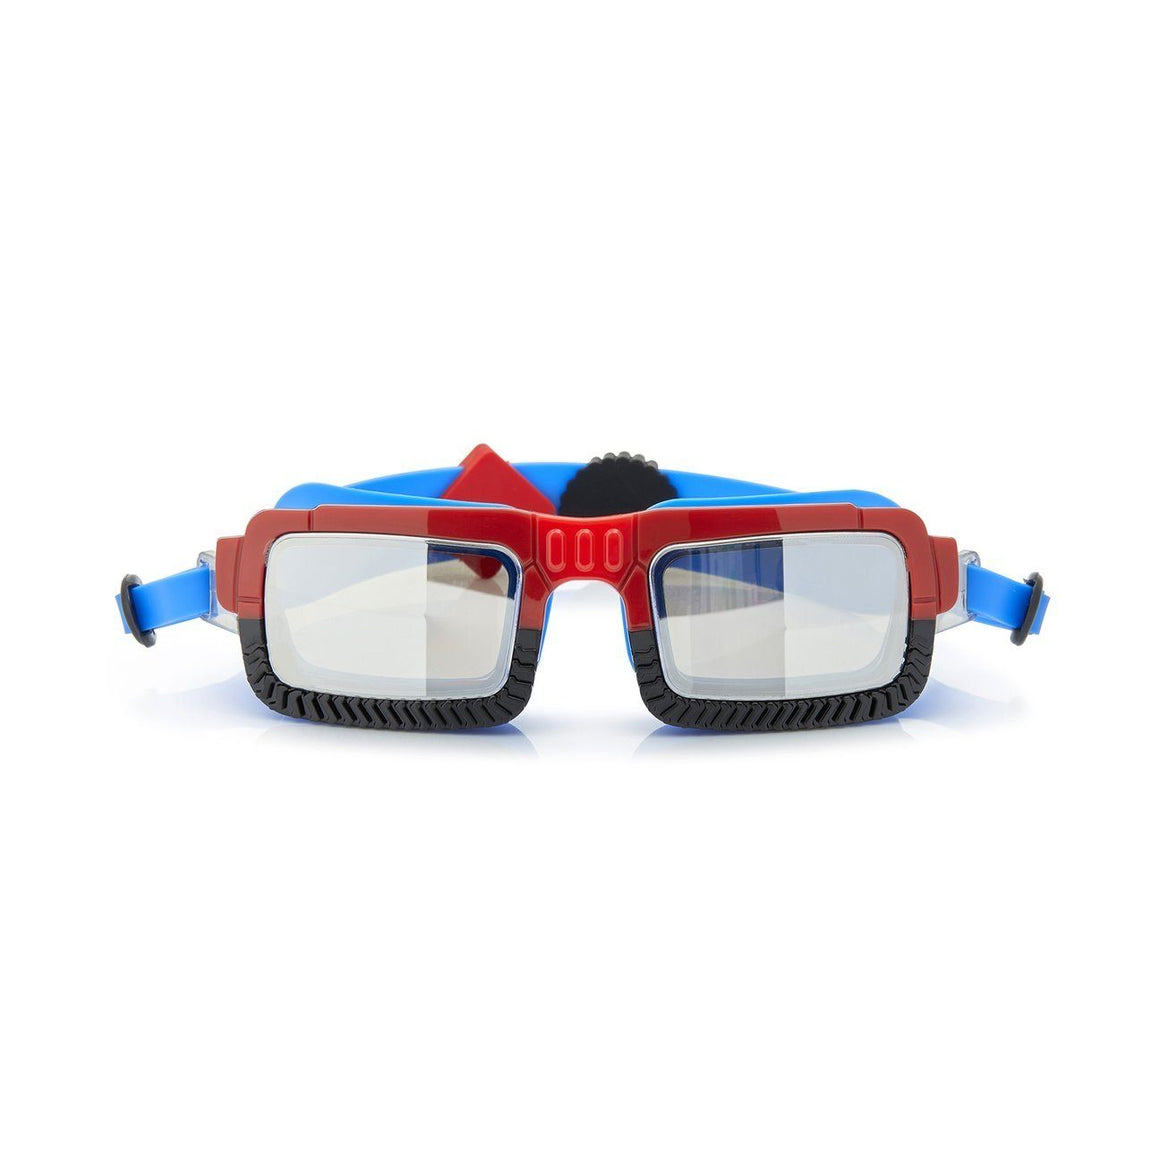 Bling2o - Truck Norris Swim Googles - Texas Ranger Red Swim Goggles Bling2o